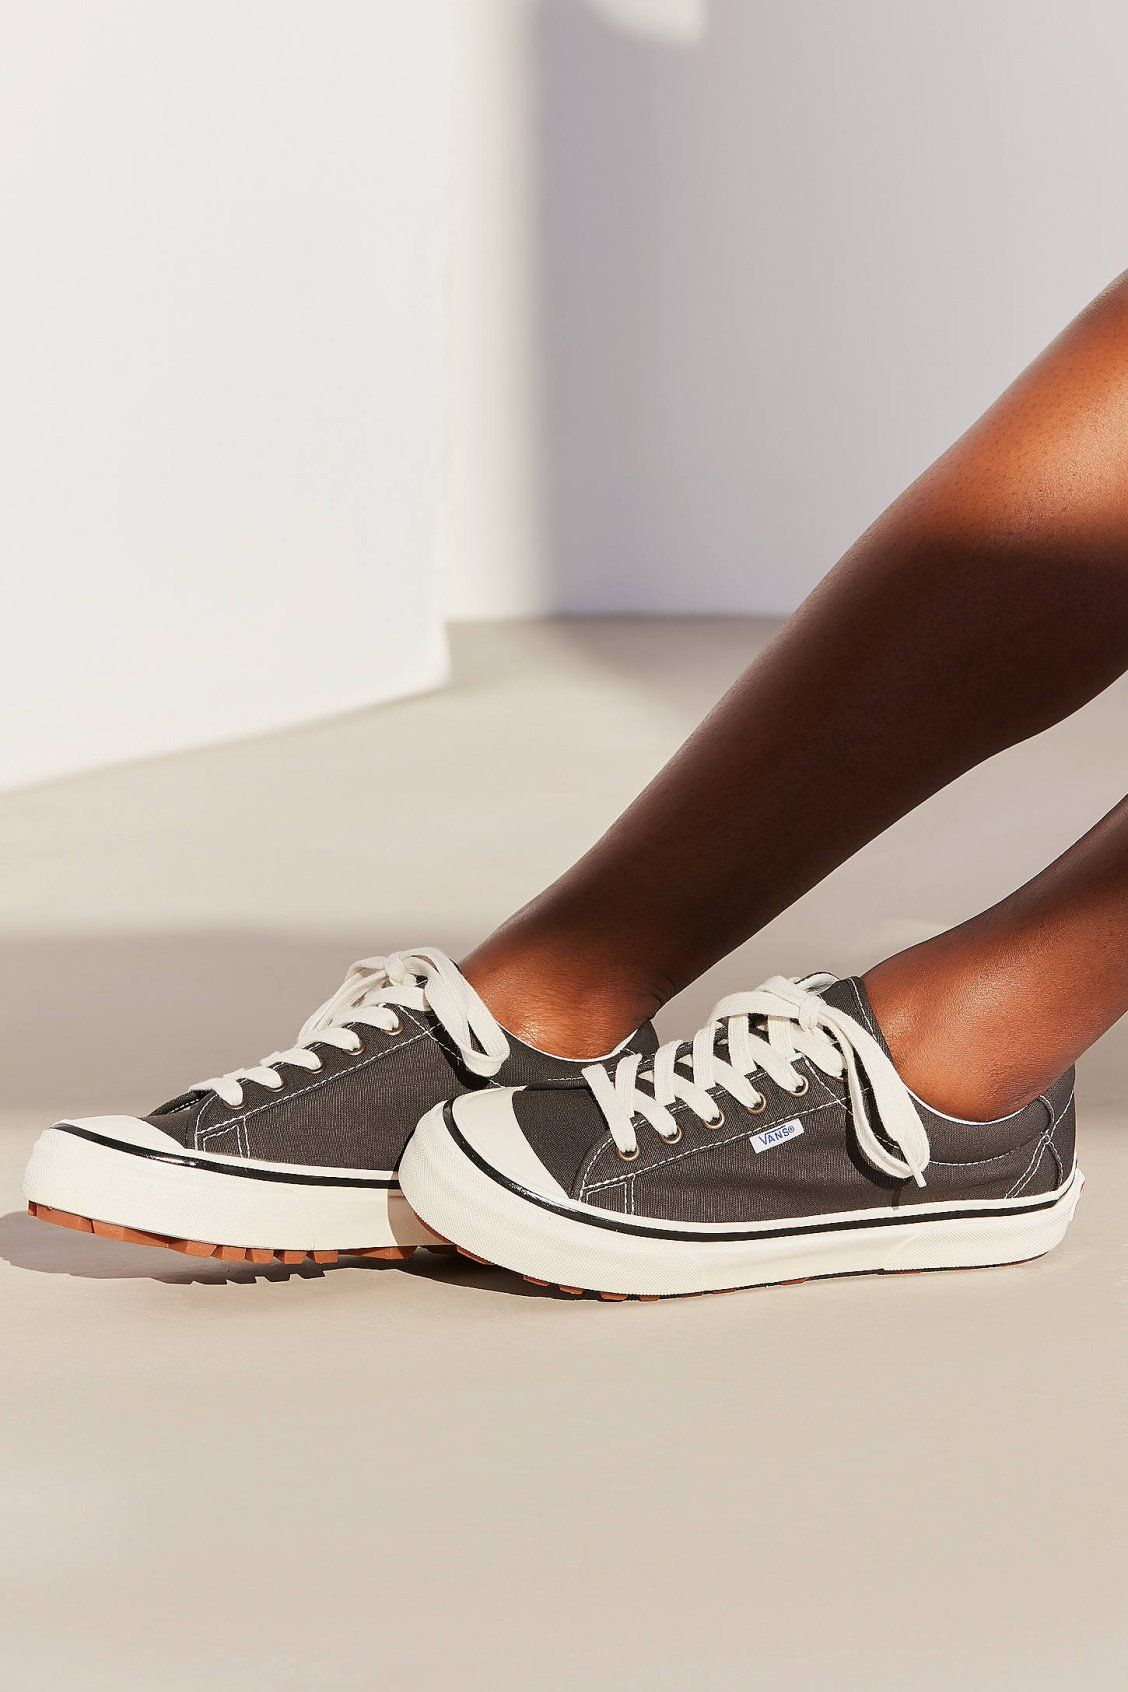 new style 281e1 a10d8 Vans Anaheim Factory Style 29 DX Sneaker  Urban Outfitters